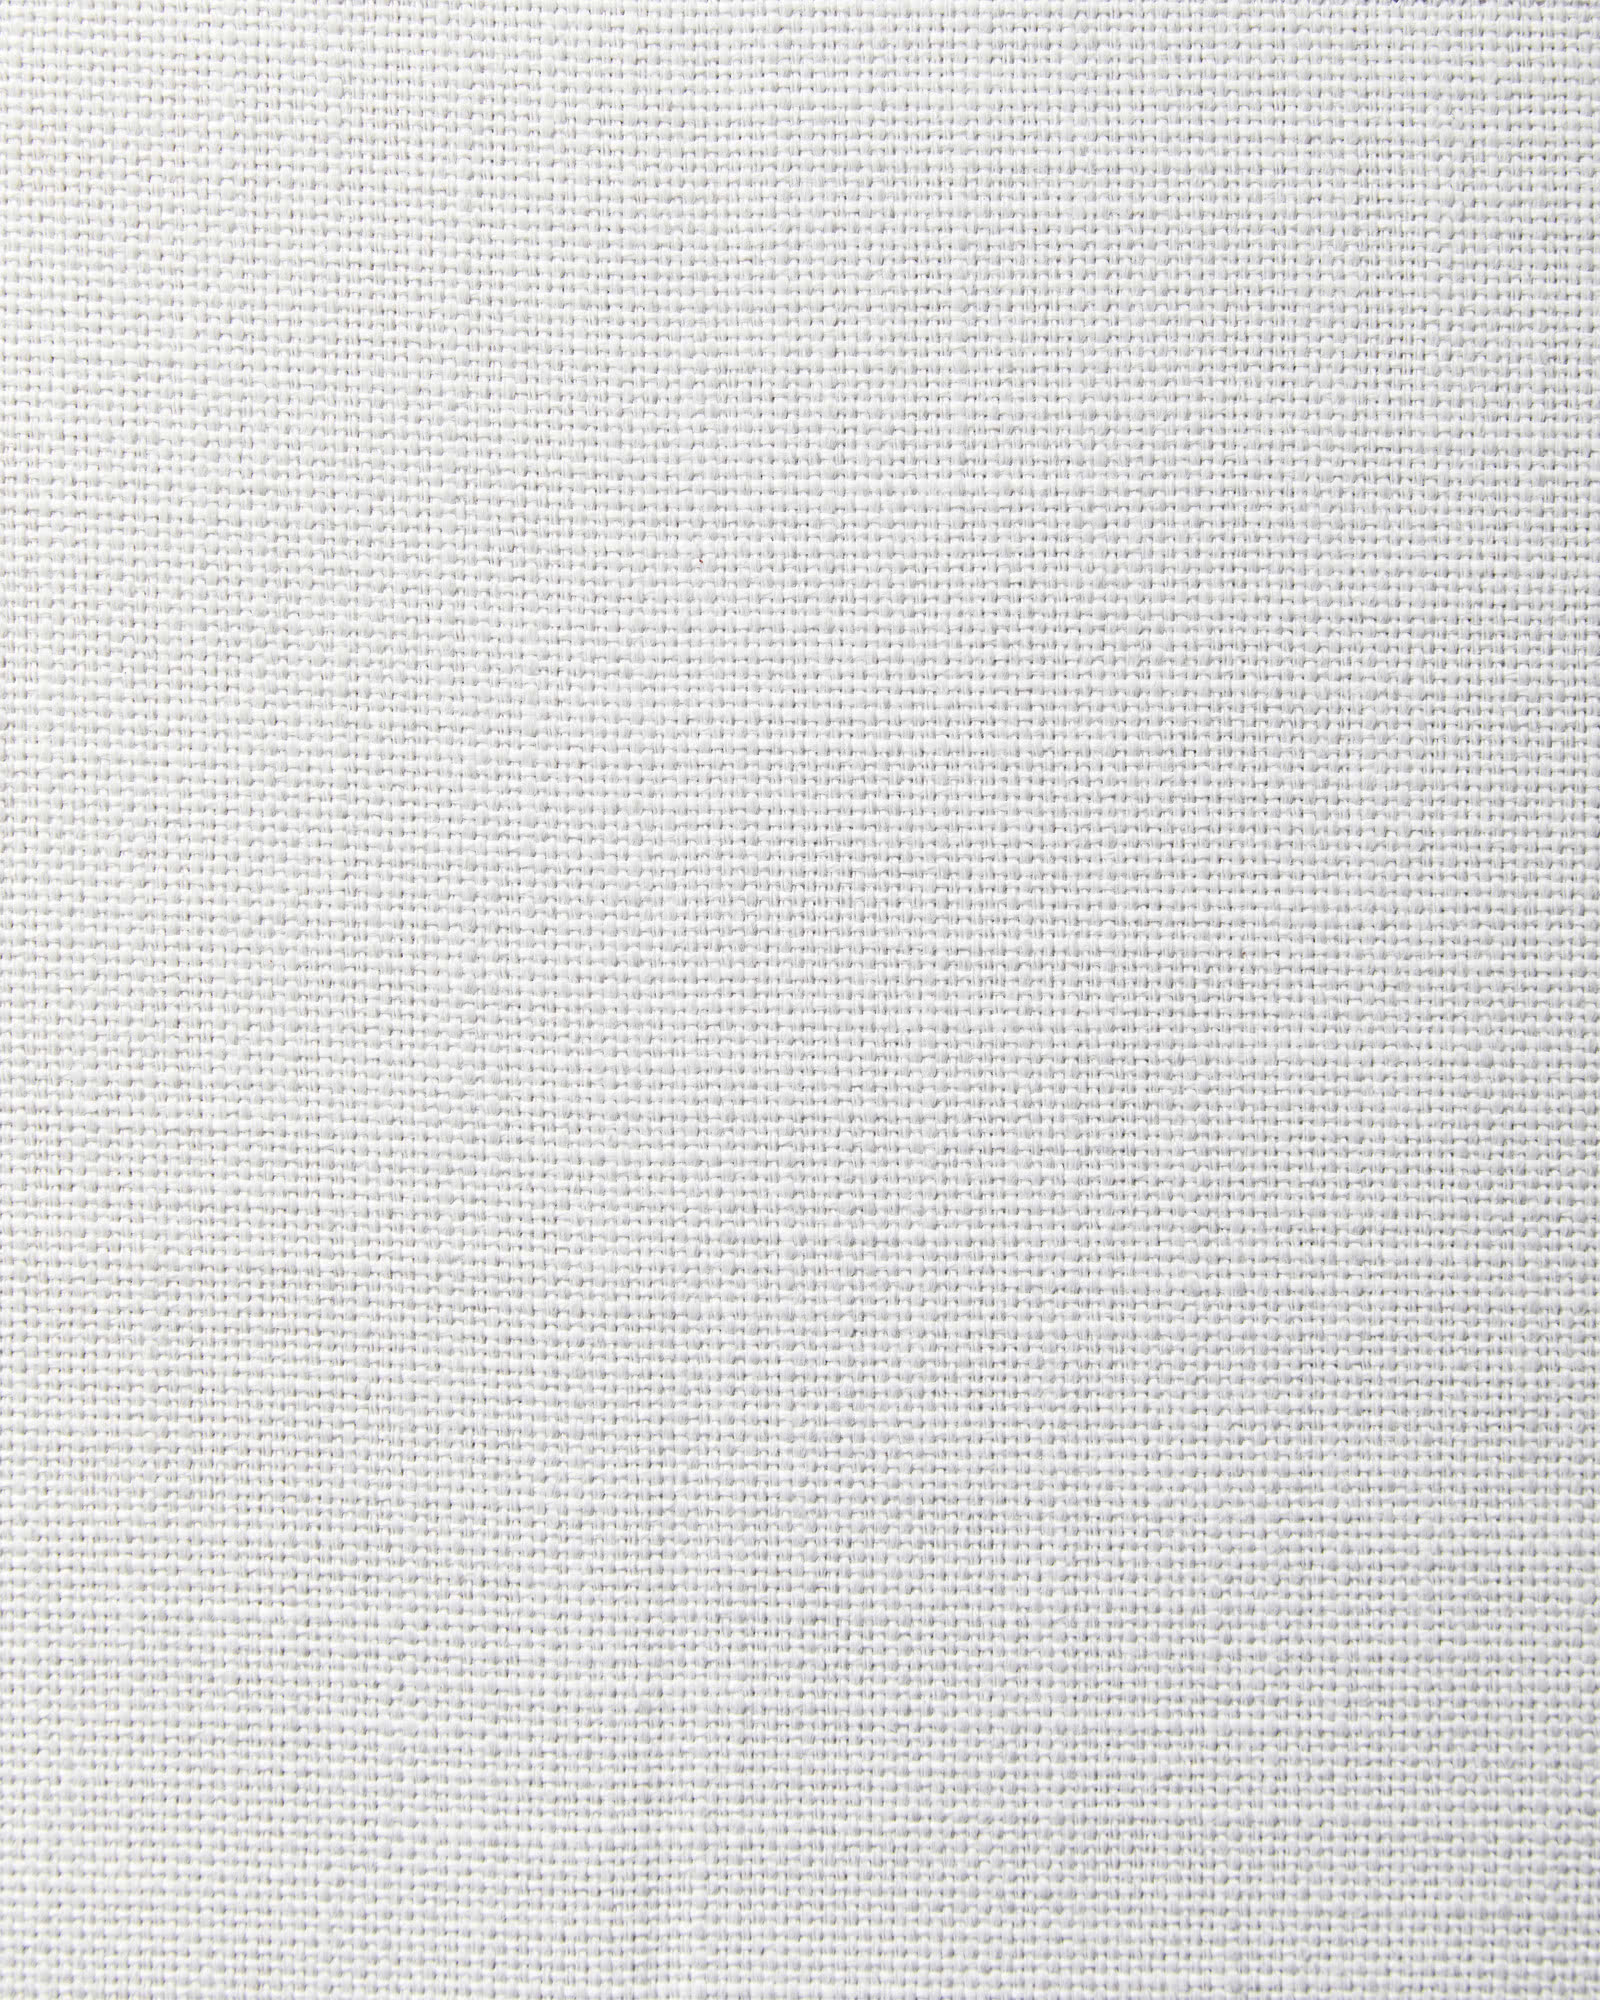 Fabric by the Yard – Perennials® Basketweave Fabric, Fog